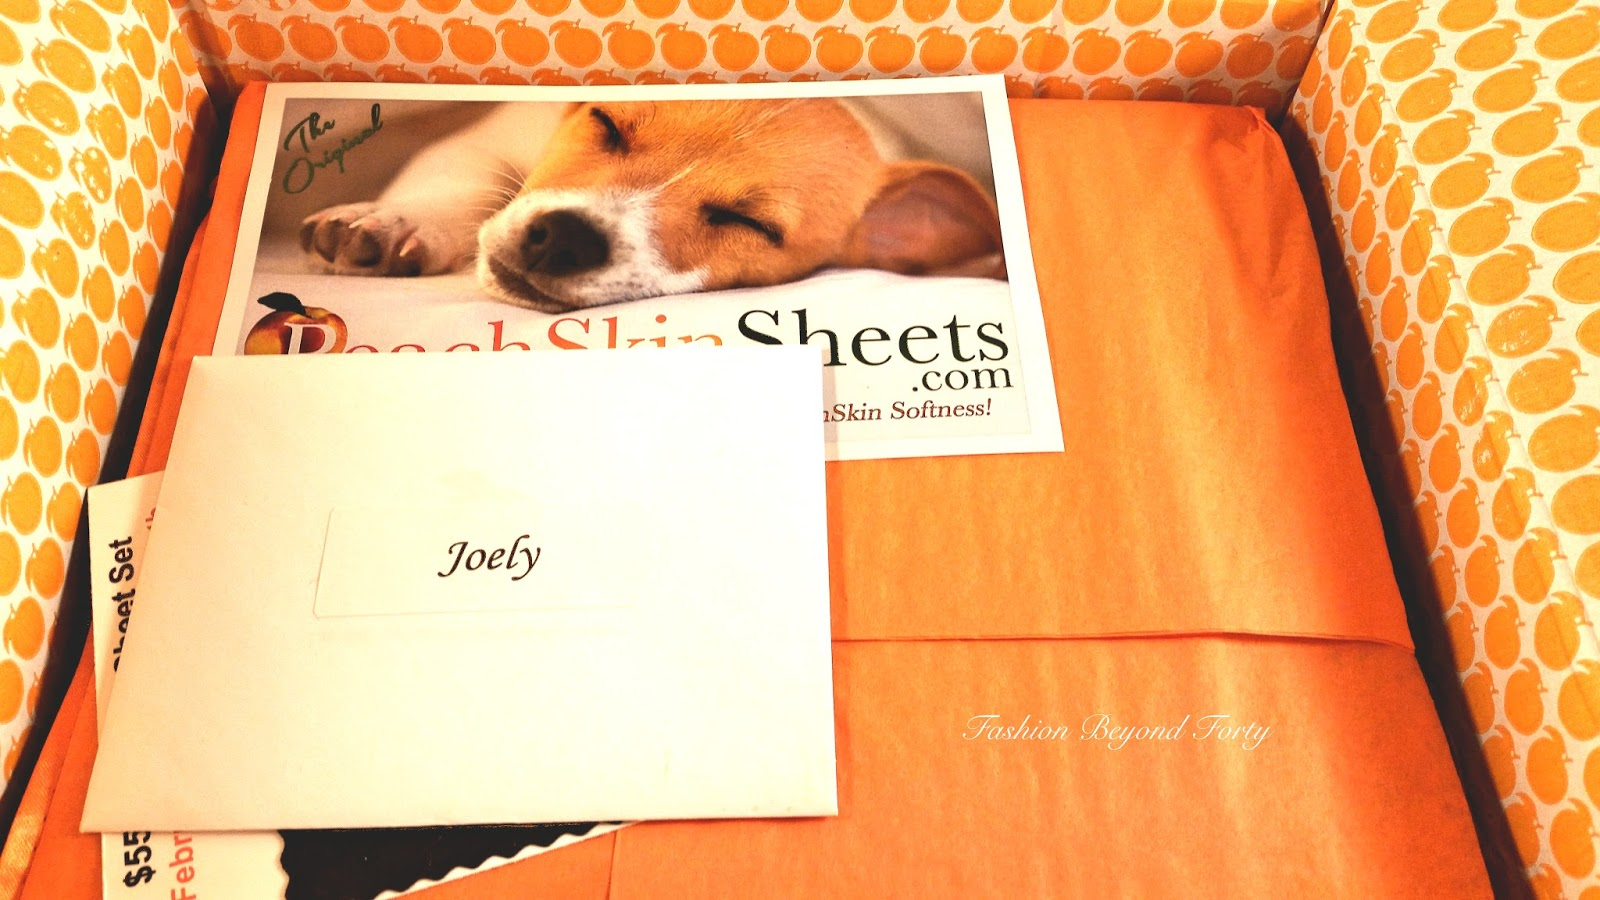 Enter To Win PeachSkinSheets In The Magical March Hop